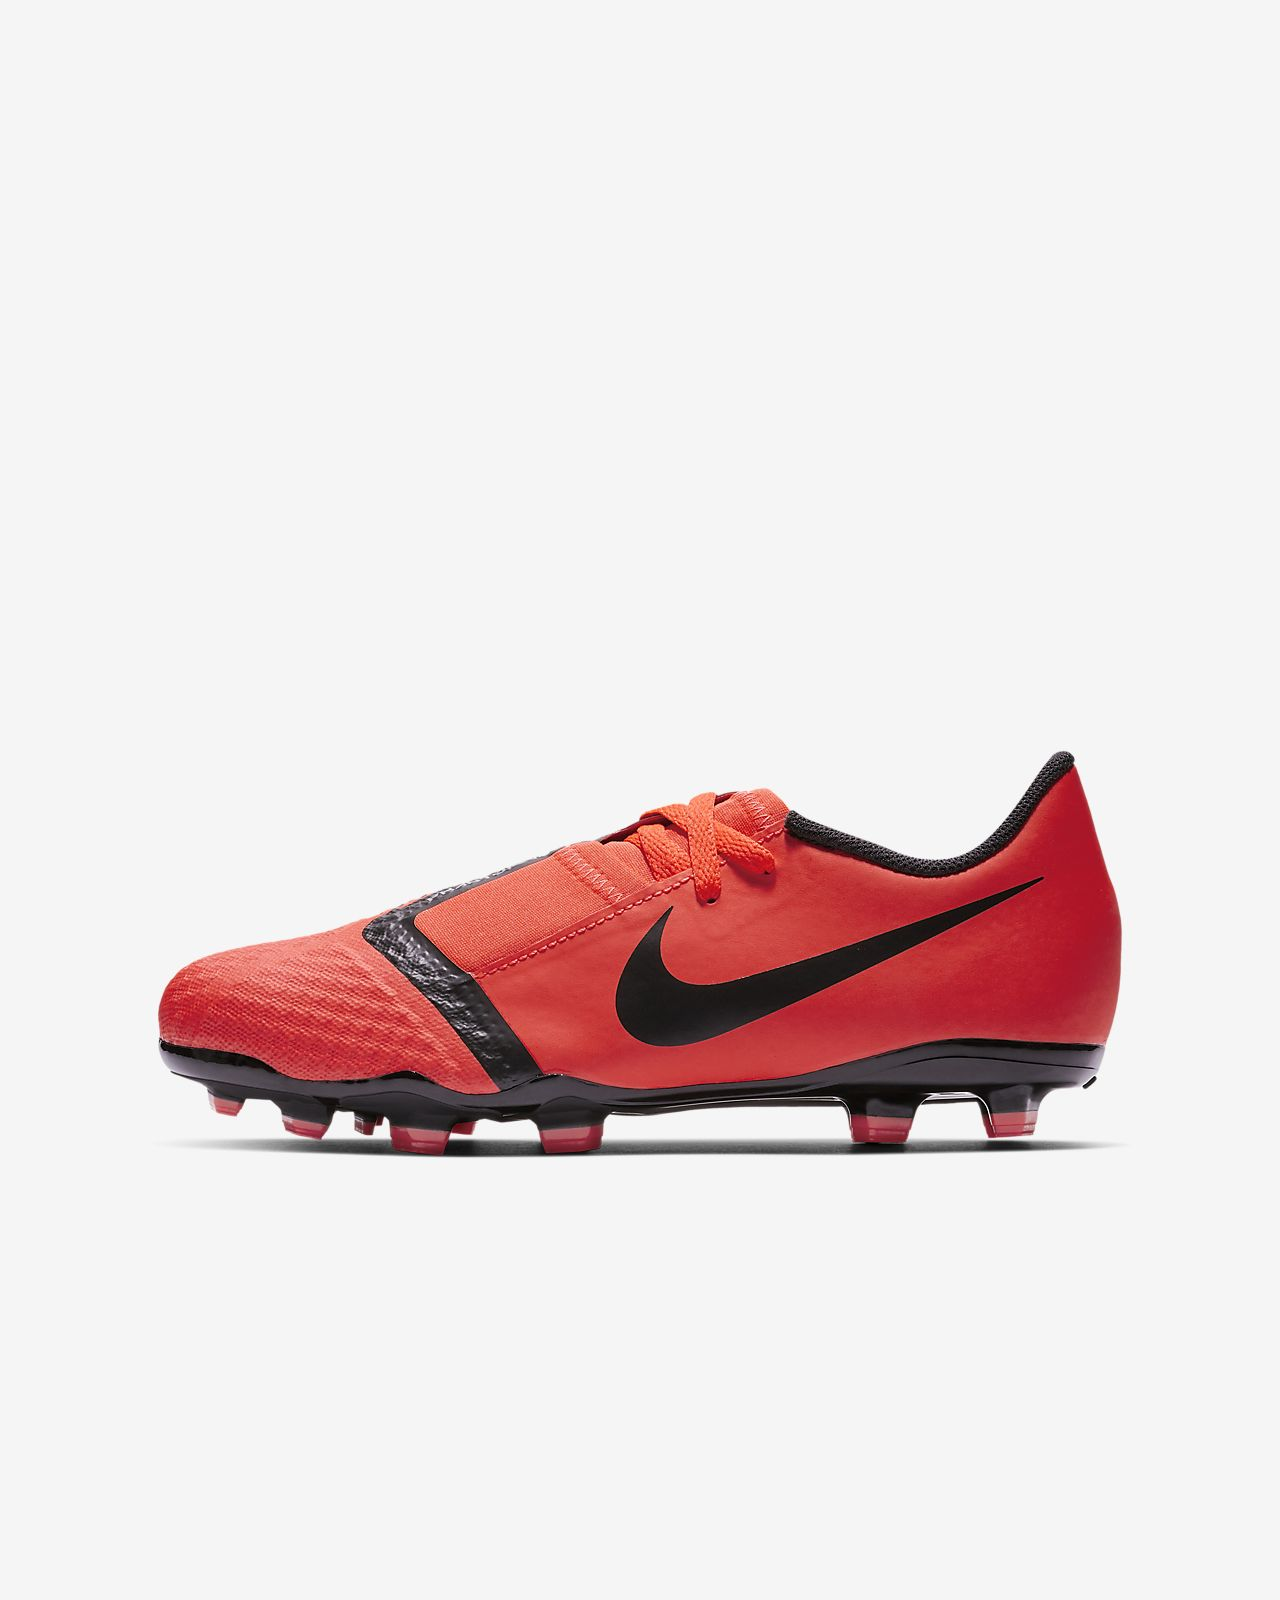 Chuteiras de futebol para terreno firme Nike Jr. PhantomVNM Academy FG Game Over Júnior